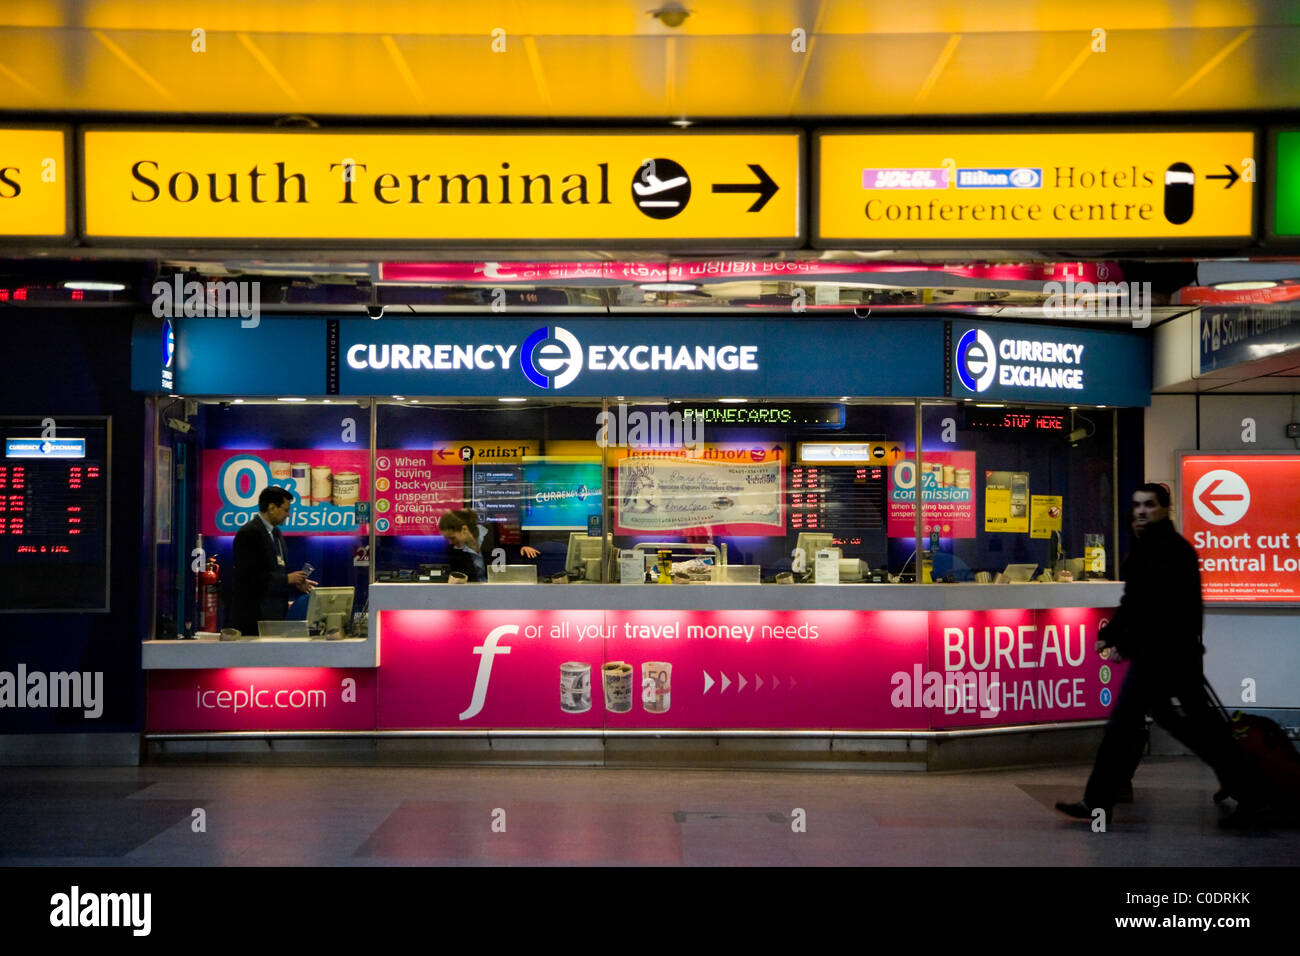 Bureau de change operated by international currency exchange 39 ice 39 stock photo royalty free - Gatwick airport bureau de change ...